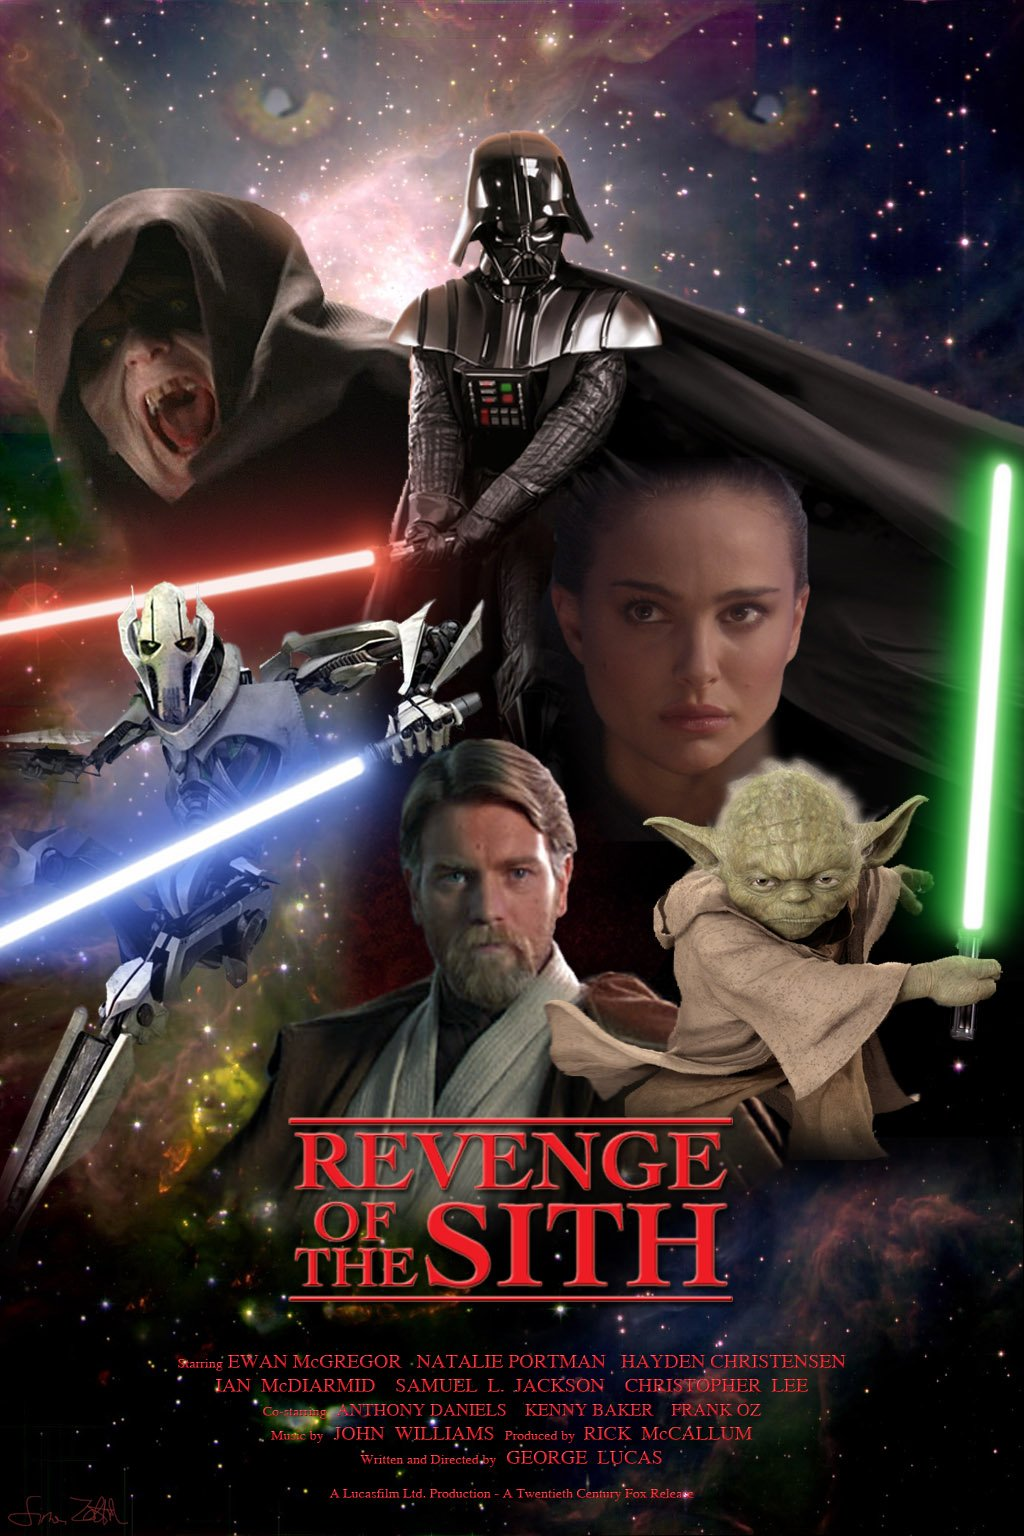 star_wars_episode_3_revenge_of_the_sith_poster_2005_01.jpg